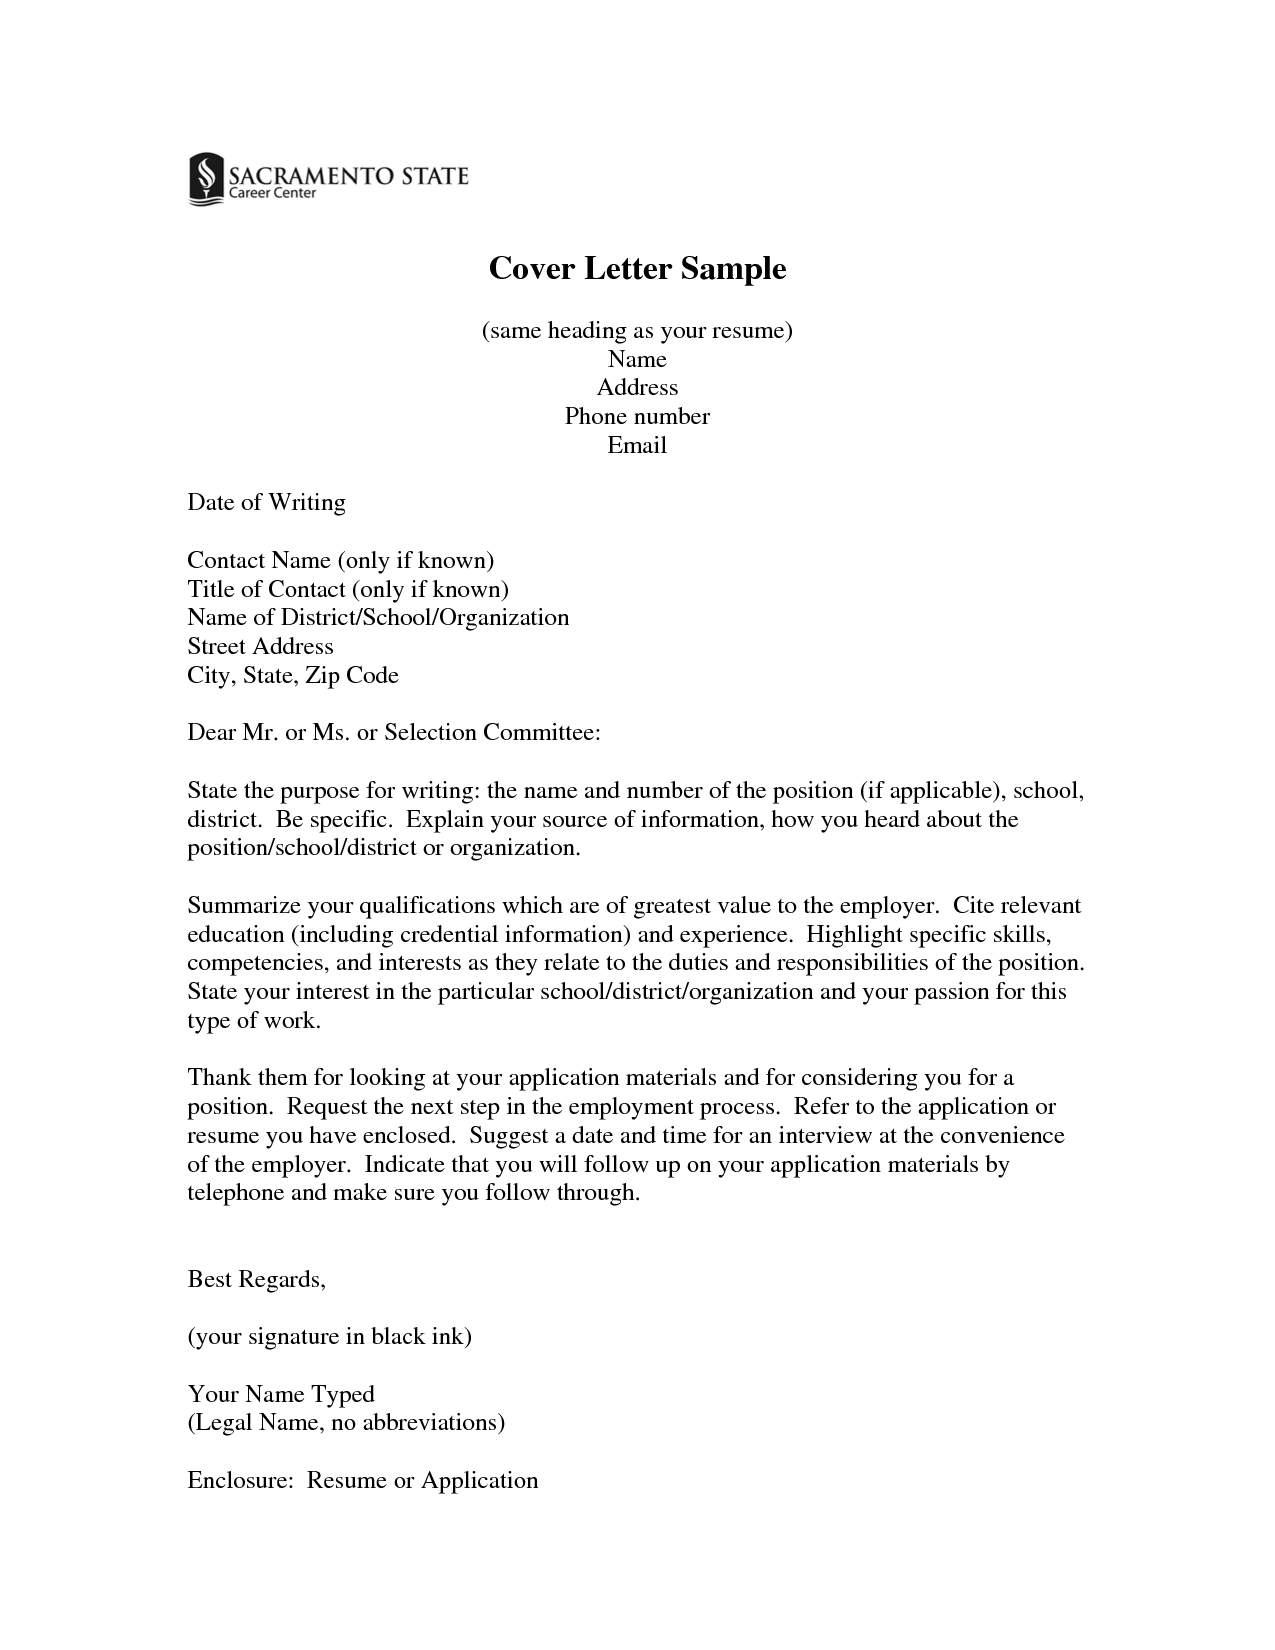 same cover letters for resume Cover Letter Sample same heading as